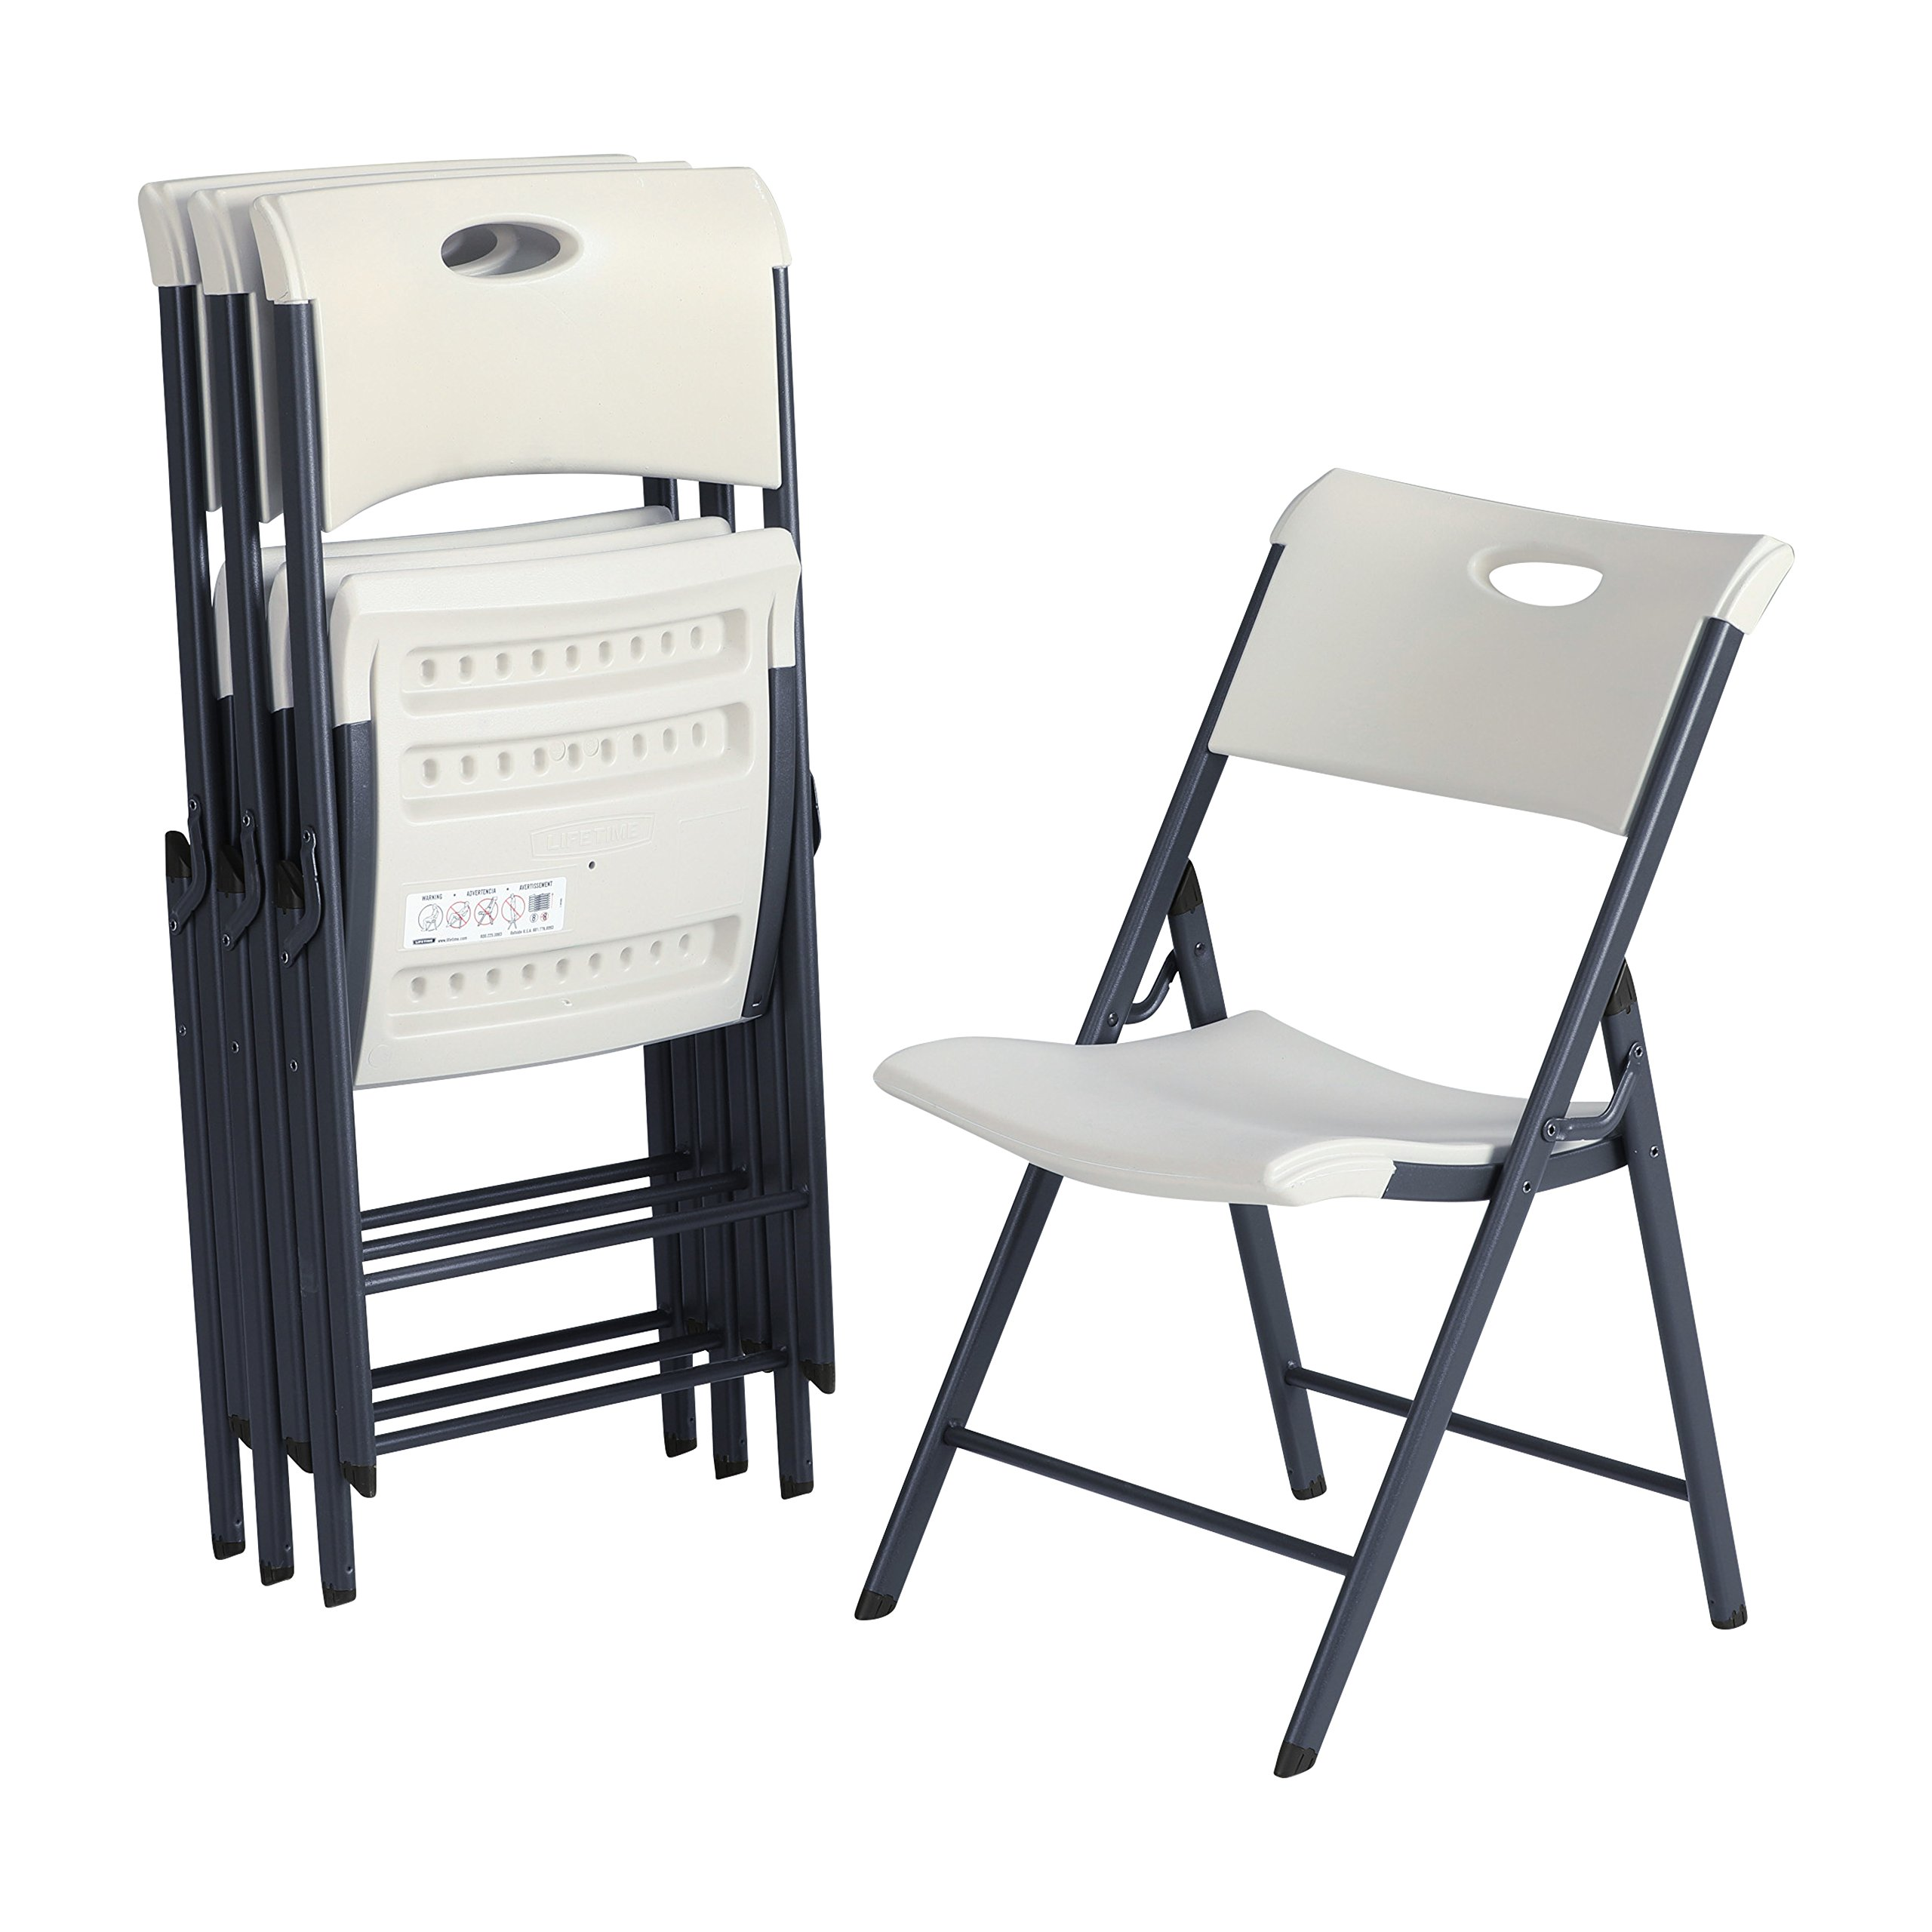 Lifetime Contemporary Commercial Folding Chair (4 Pack), White Granite by Lifetime